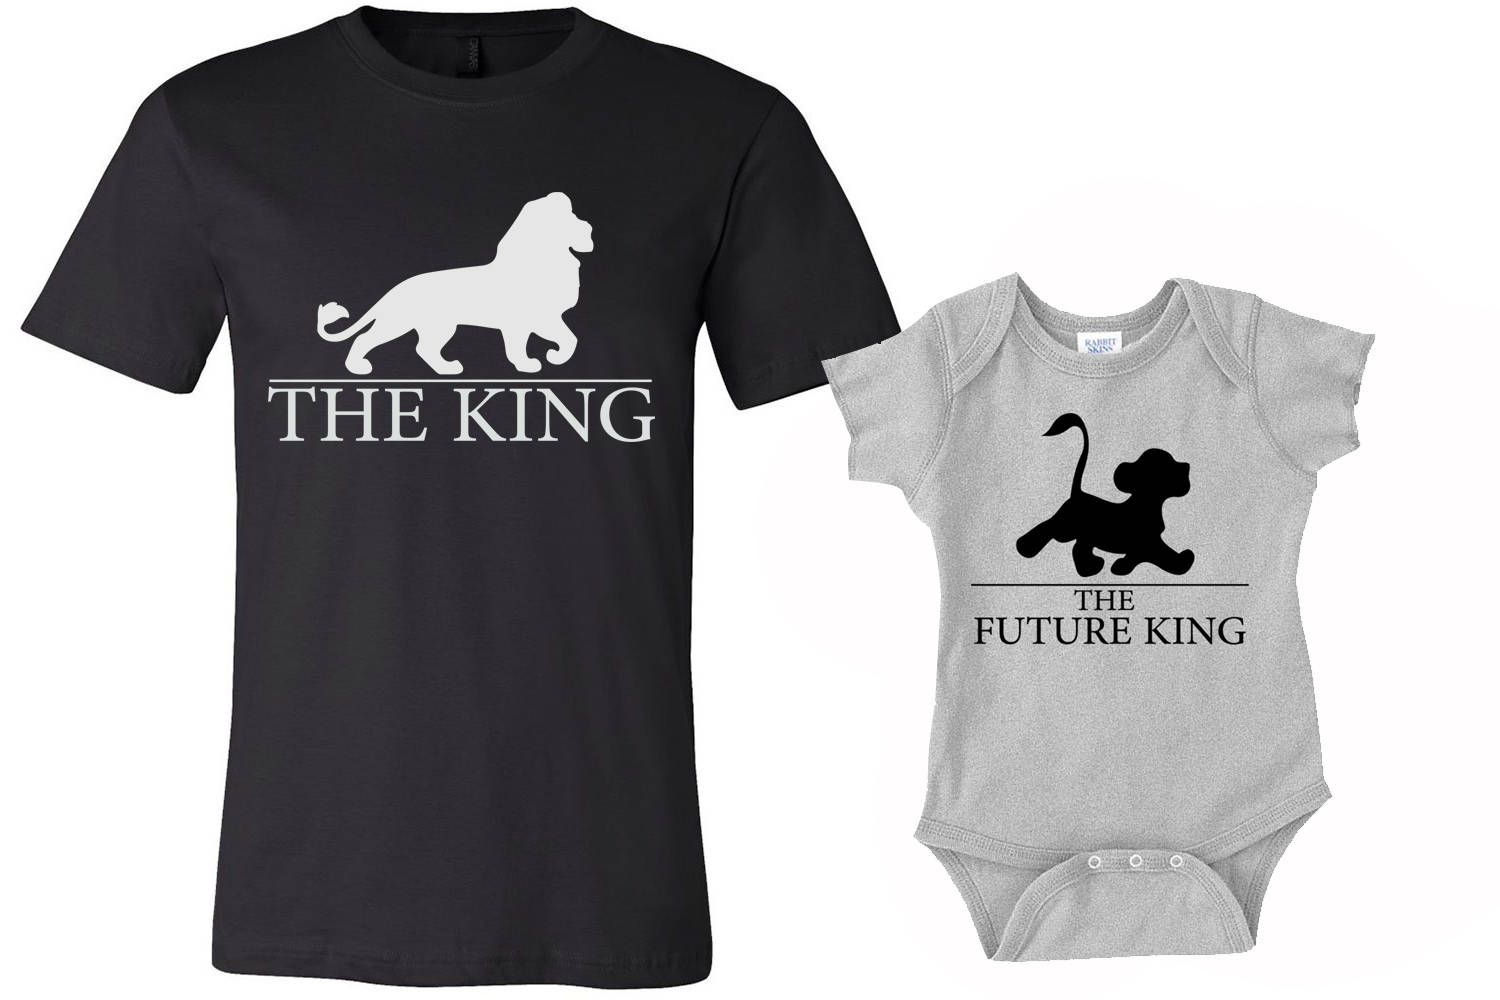 4278605e6 Set of 2 King Shirts, Dad and Son shirts, daddy shirt and baby onesies  Shirts, lion king shirts, funny tshirts, family shirts, baby onesies by  MOTIFIT on ...